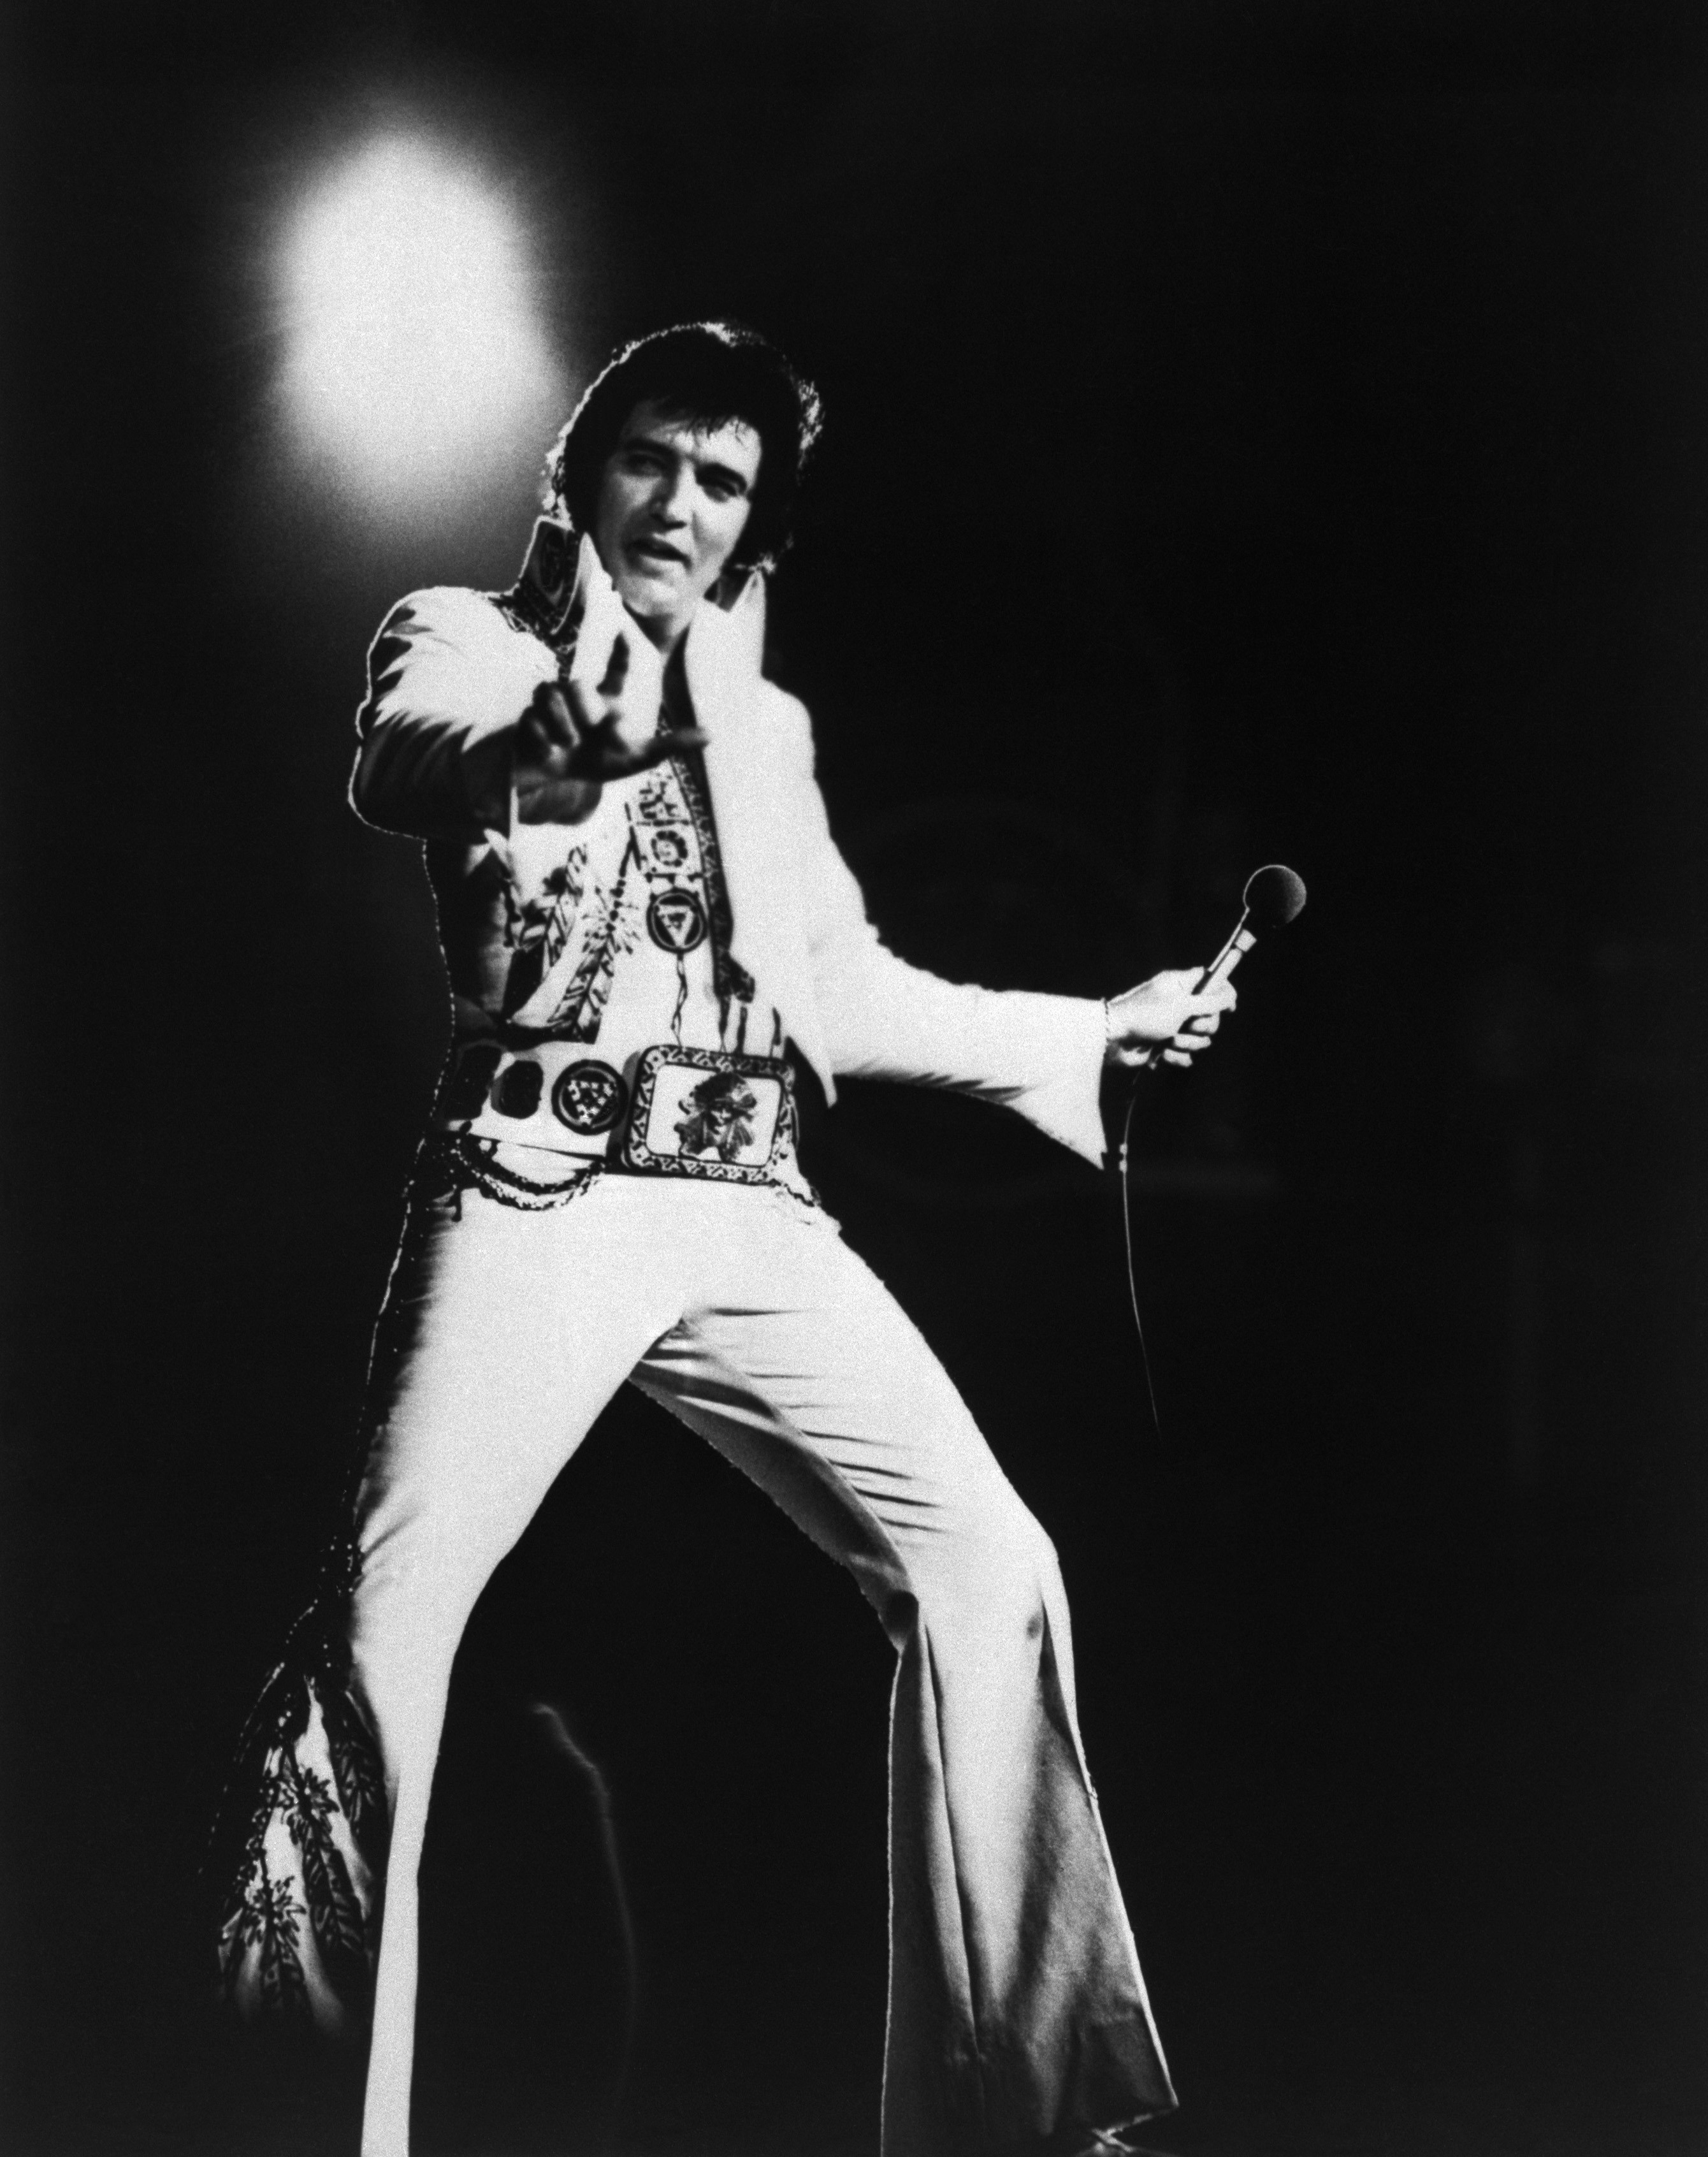 Elvis Presley strikes a pose during a 1977 concert, filmed for a television special, wearing one of his trademark jeweled white jumpsuits.